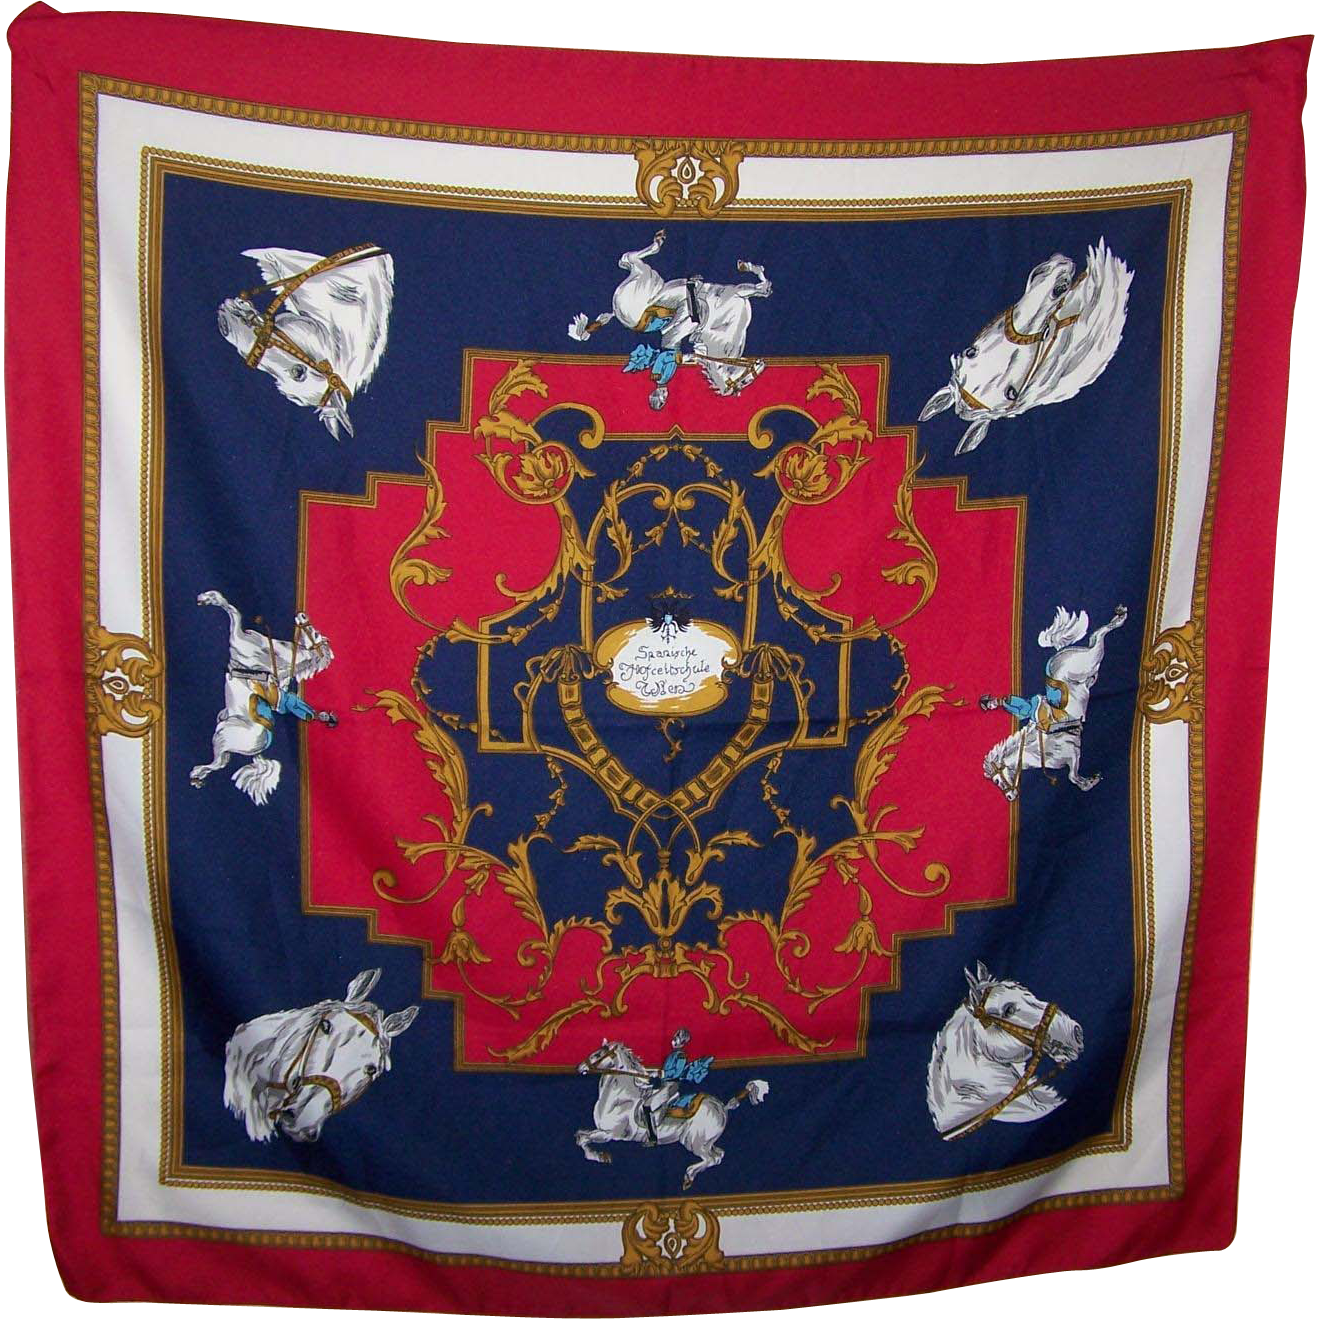 Horse Themed Souvenir Scarf Spanische Hofreitschule Wien  The Spanish Riding School of Vienna